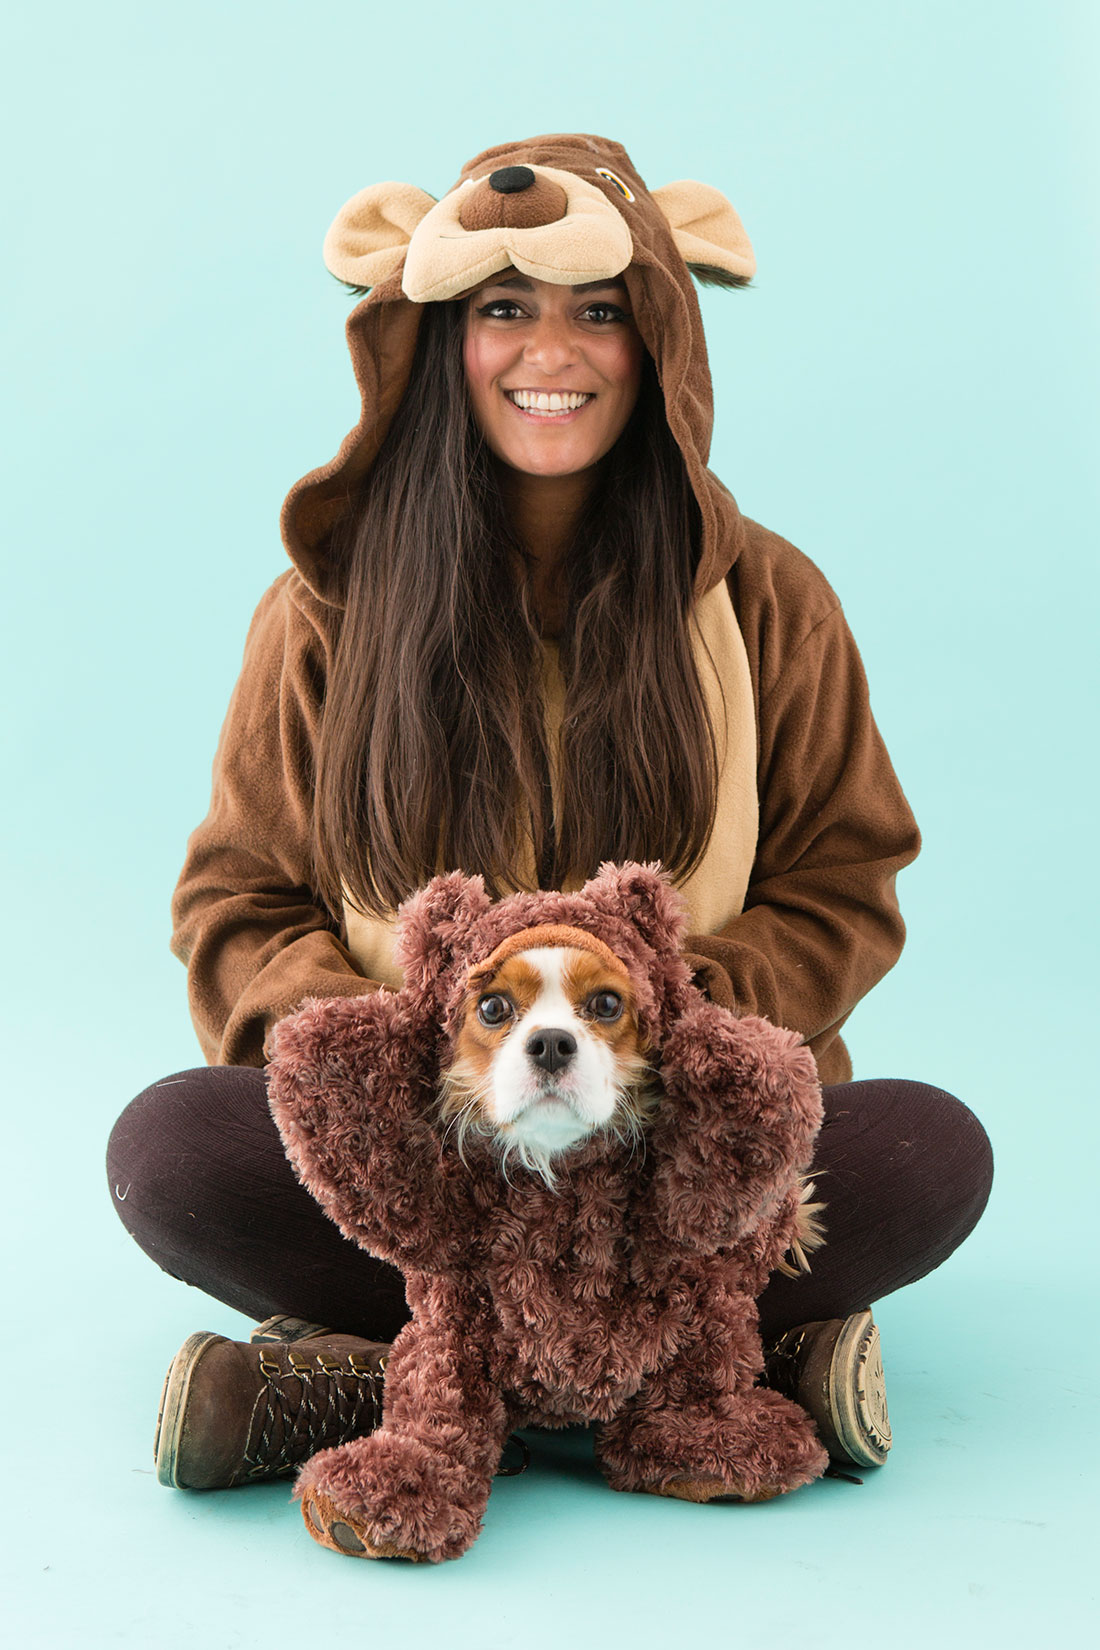 18 TEDDY BEAR COSTUME